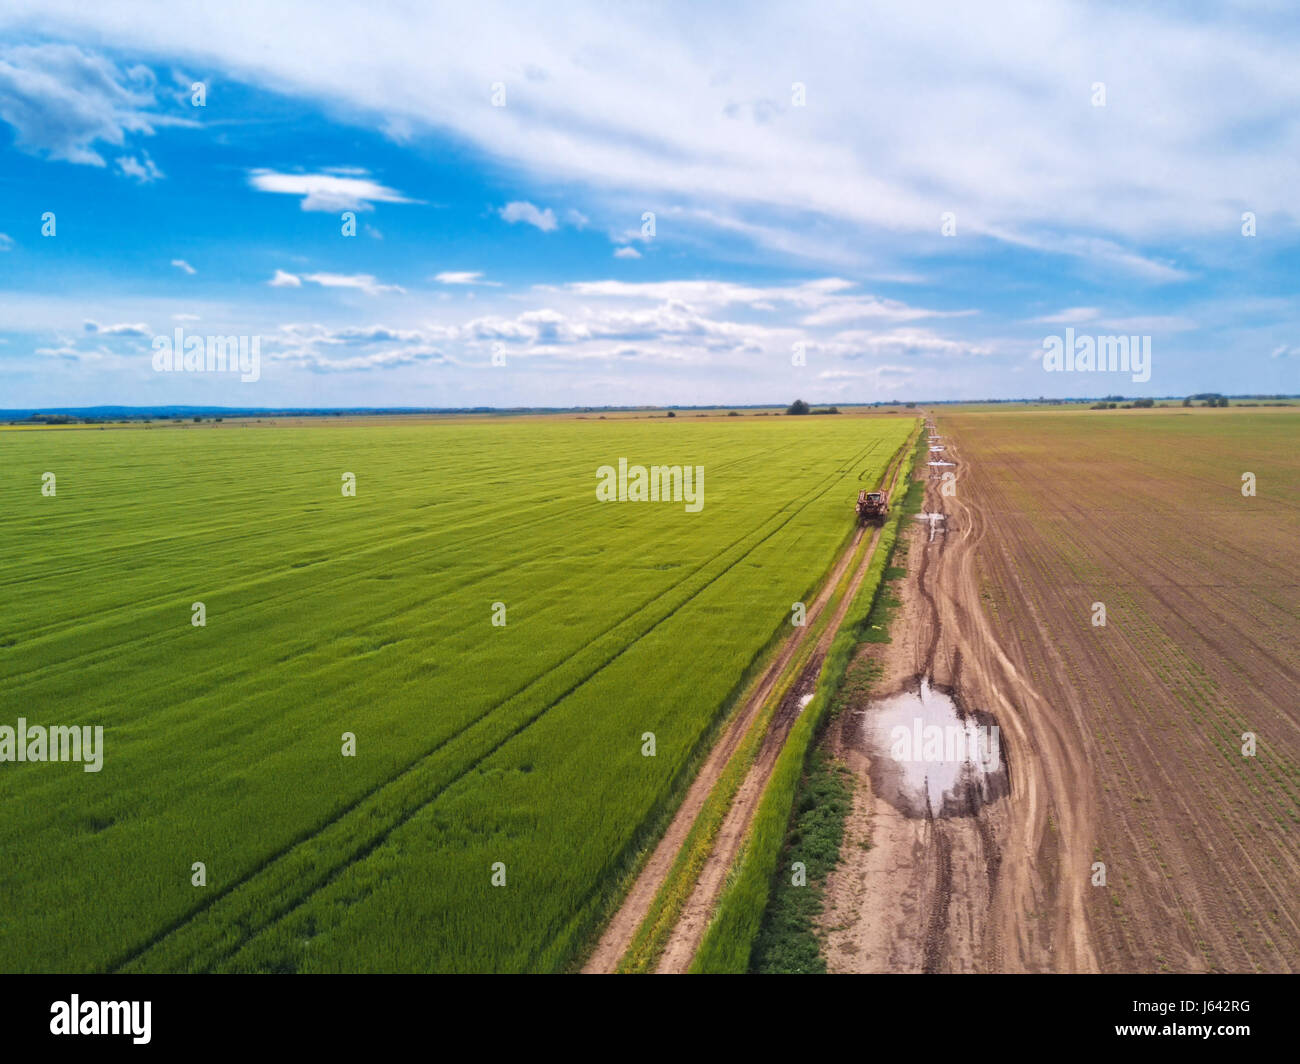 Tractor on country road through wheat field, aerial view from drone pov - Stock Image